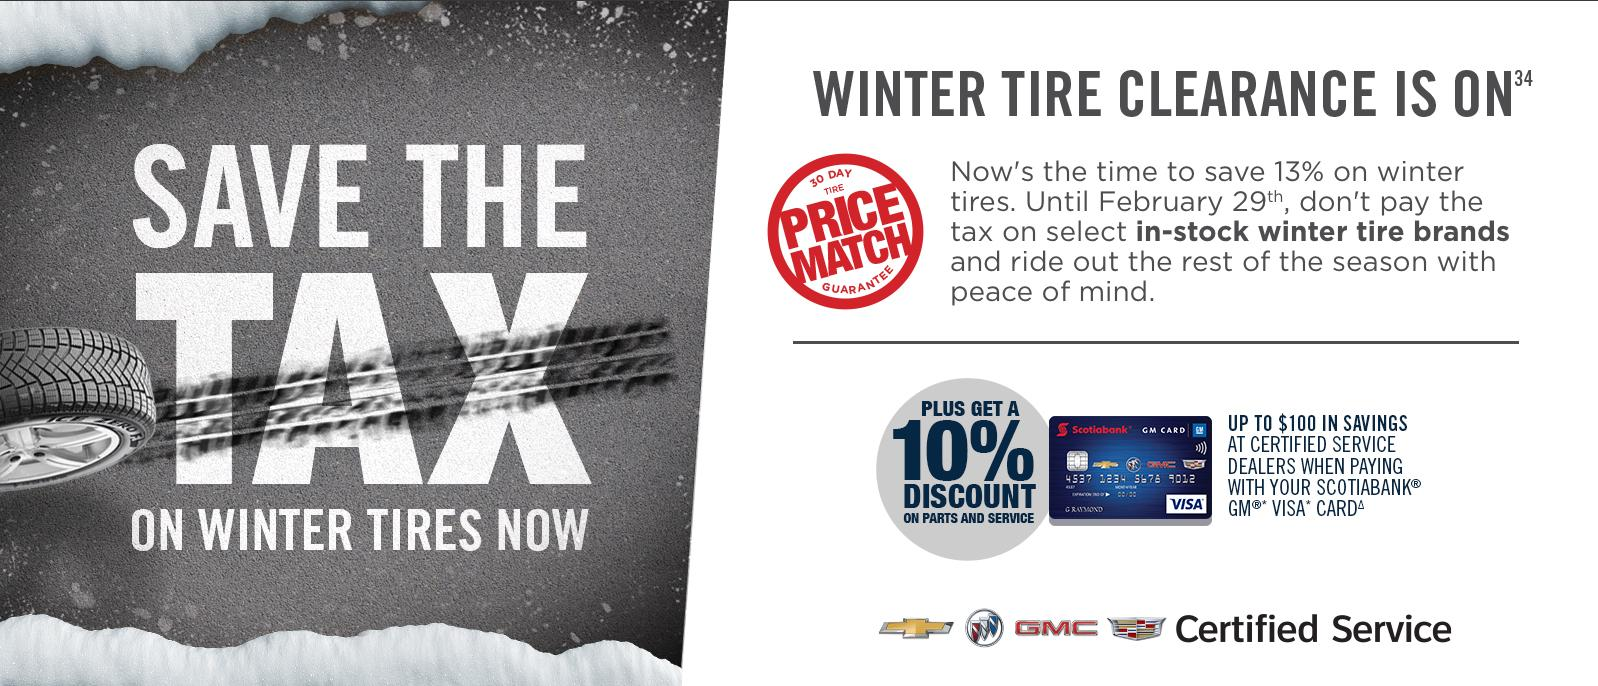 Save The Tax On Winter Tires